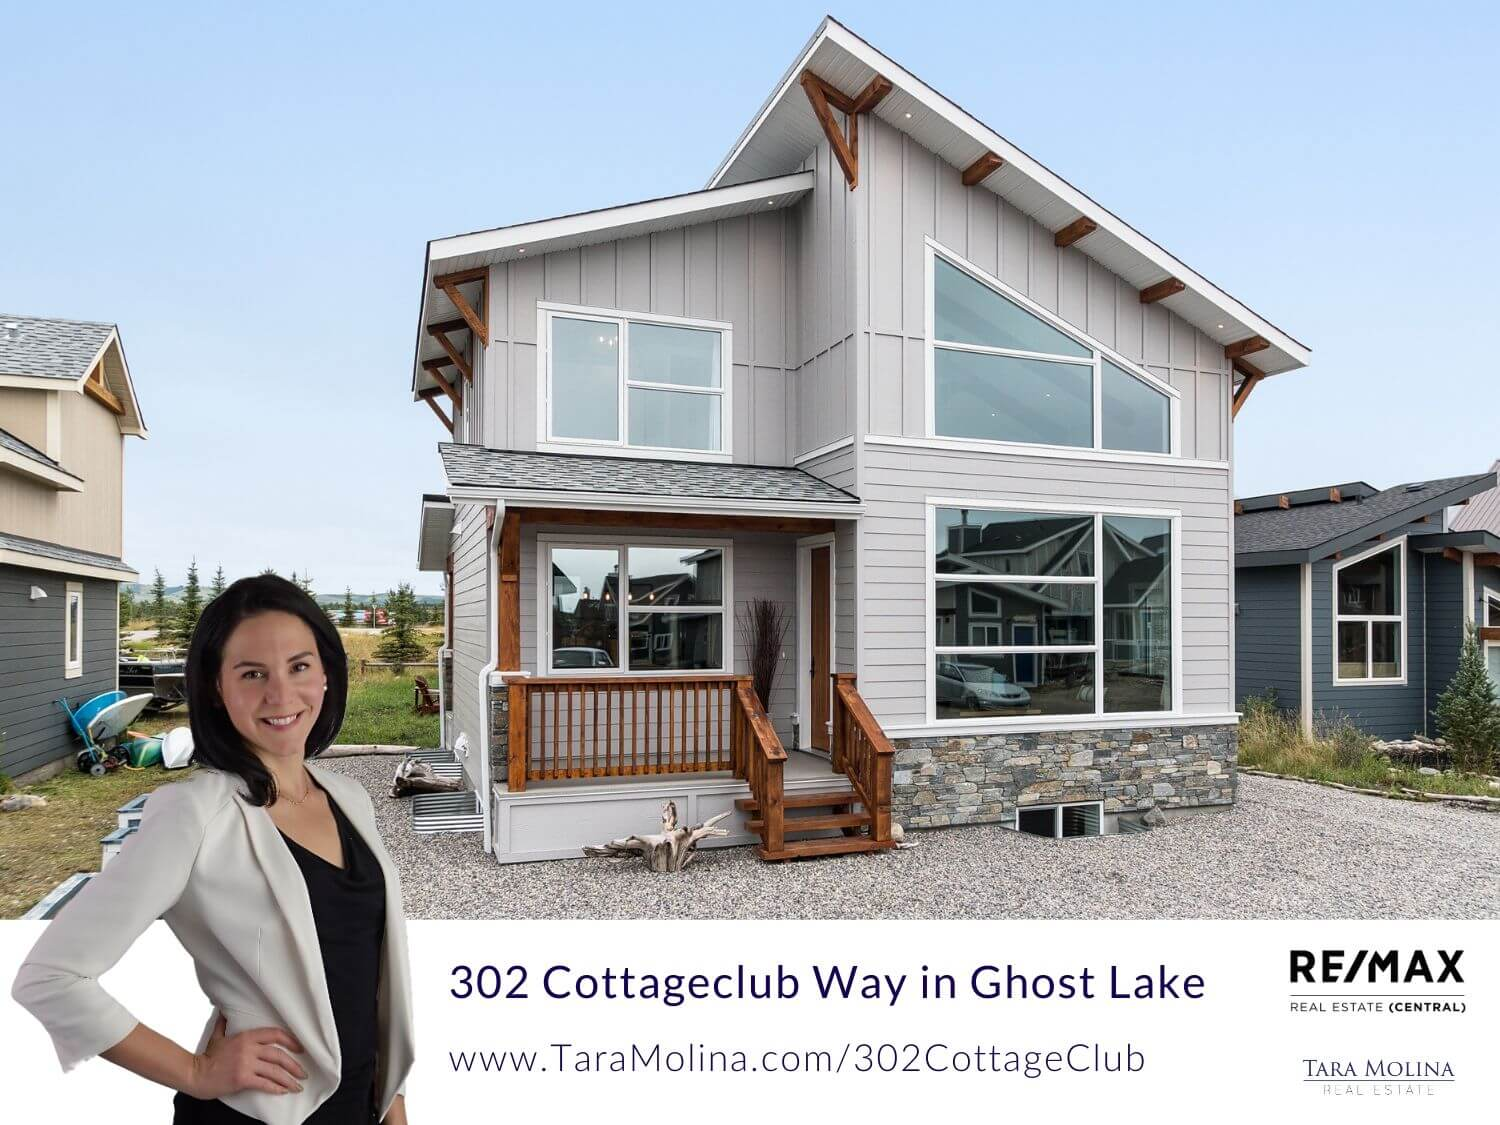 302 Cottageclub Way in Ghost